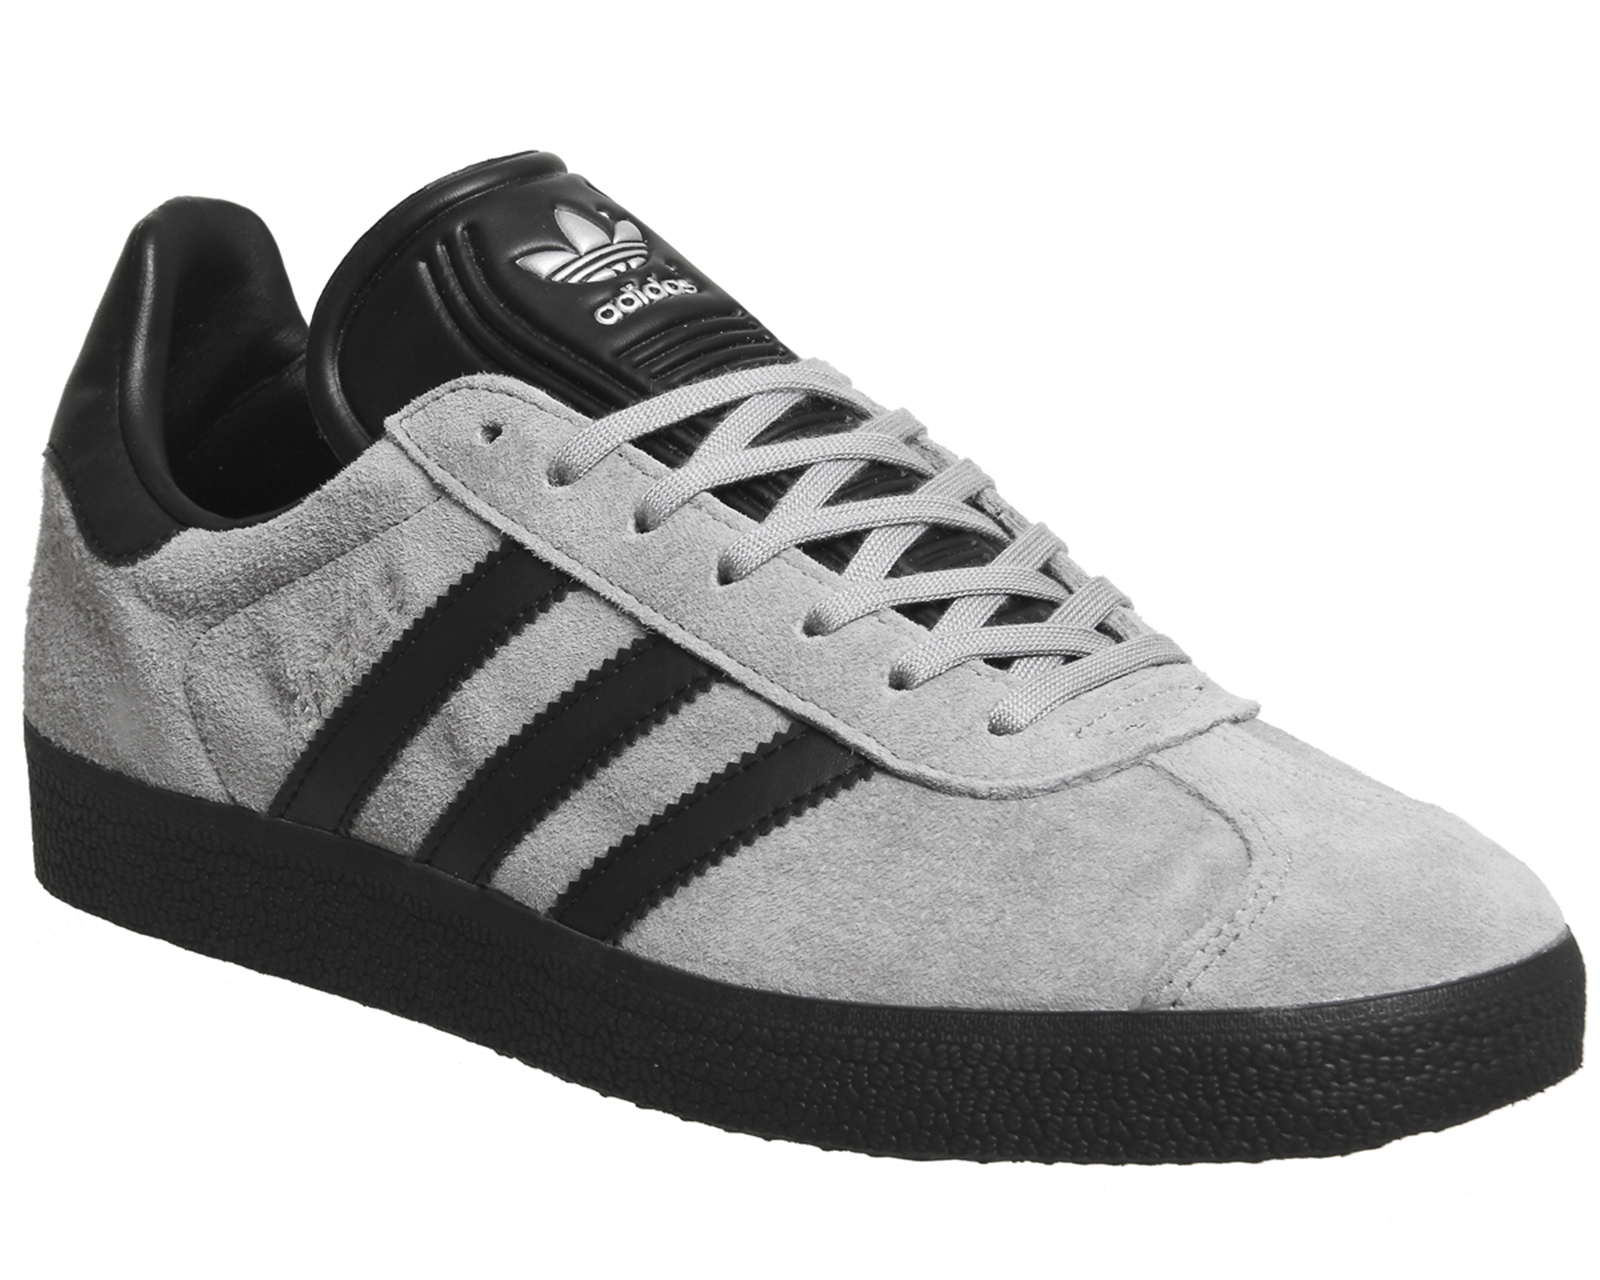 white leather adidas gazelle trainers